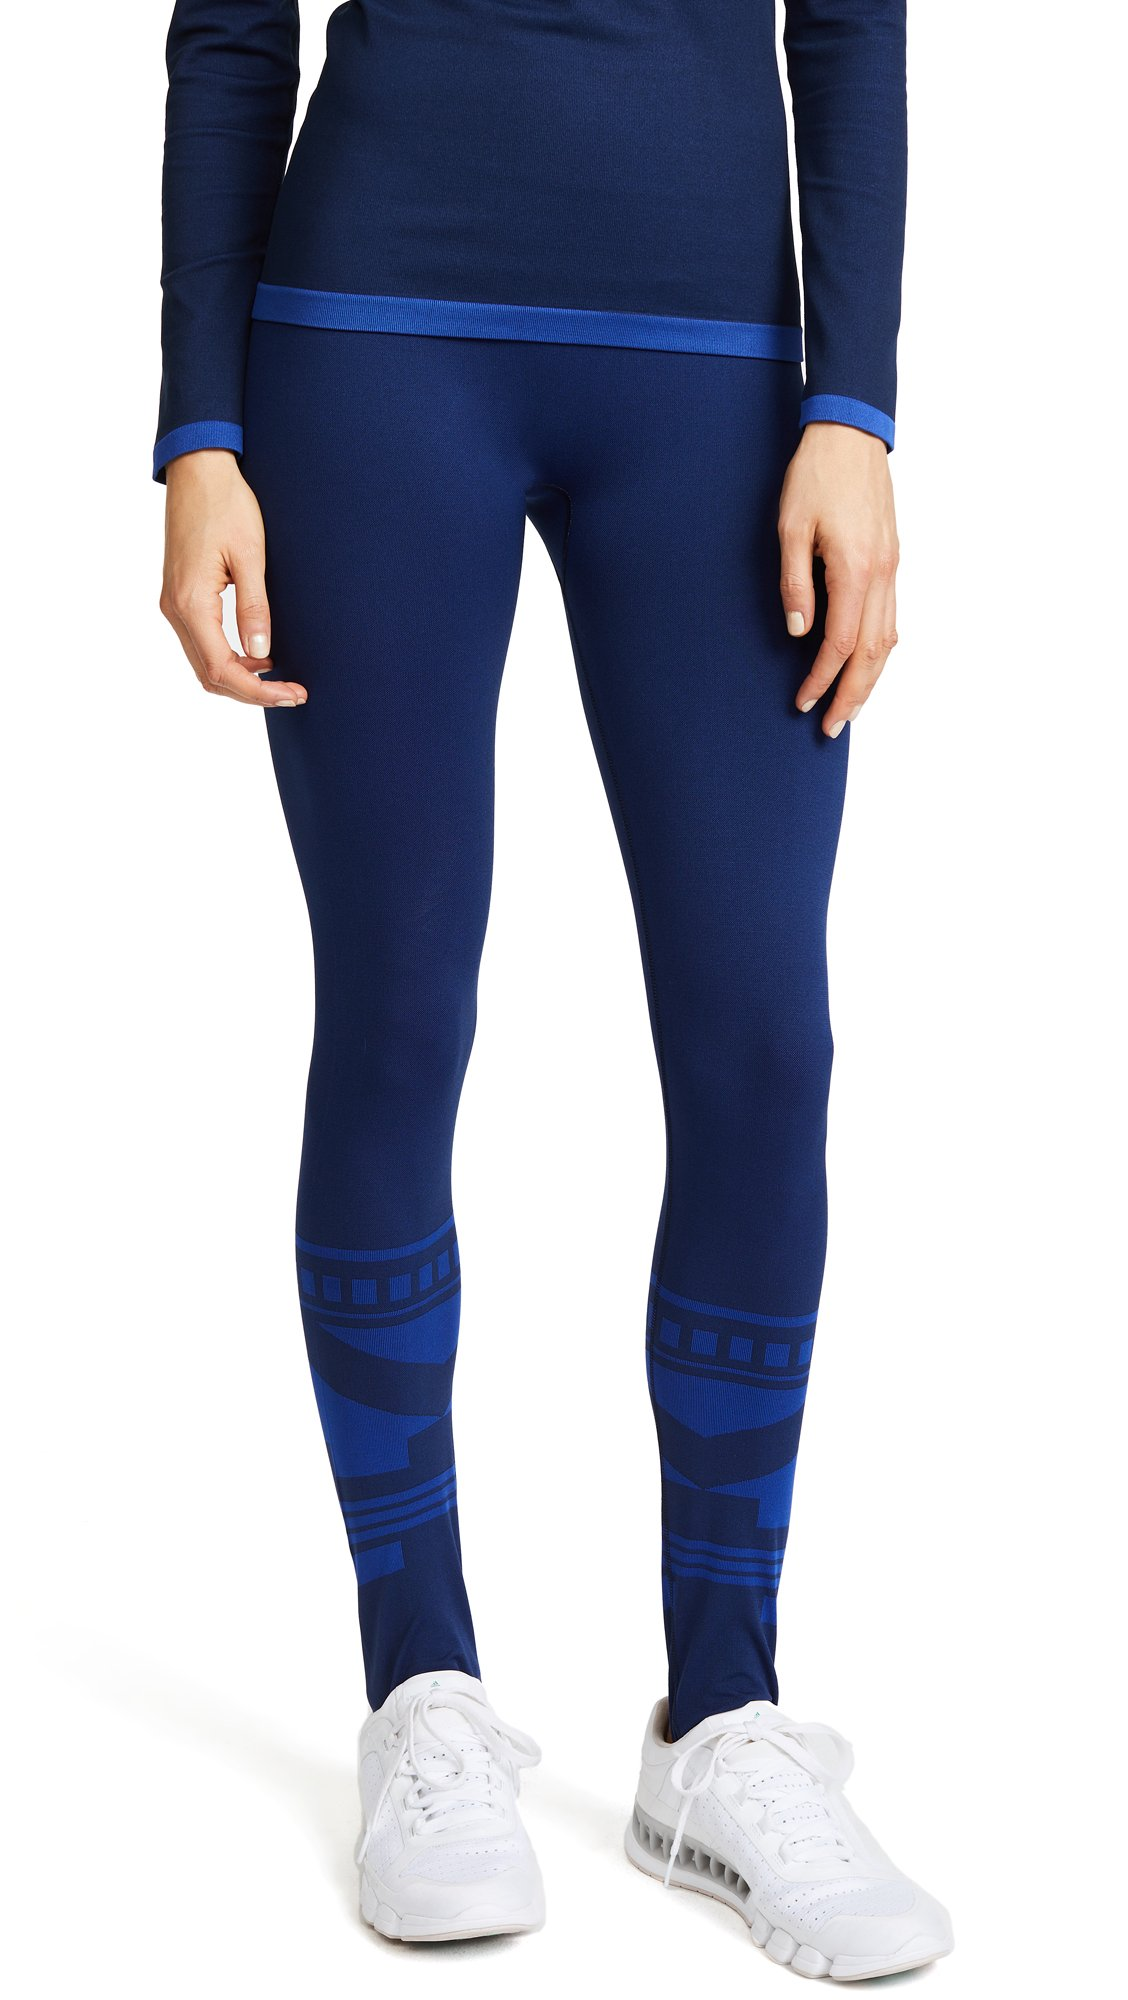 Tory Sport Women's Seamless Ski Leggings, Tory Navy Fairisle, Small by Tory Sport